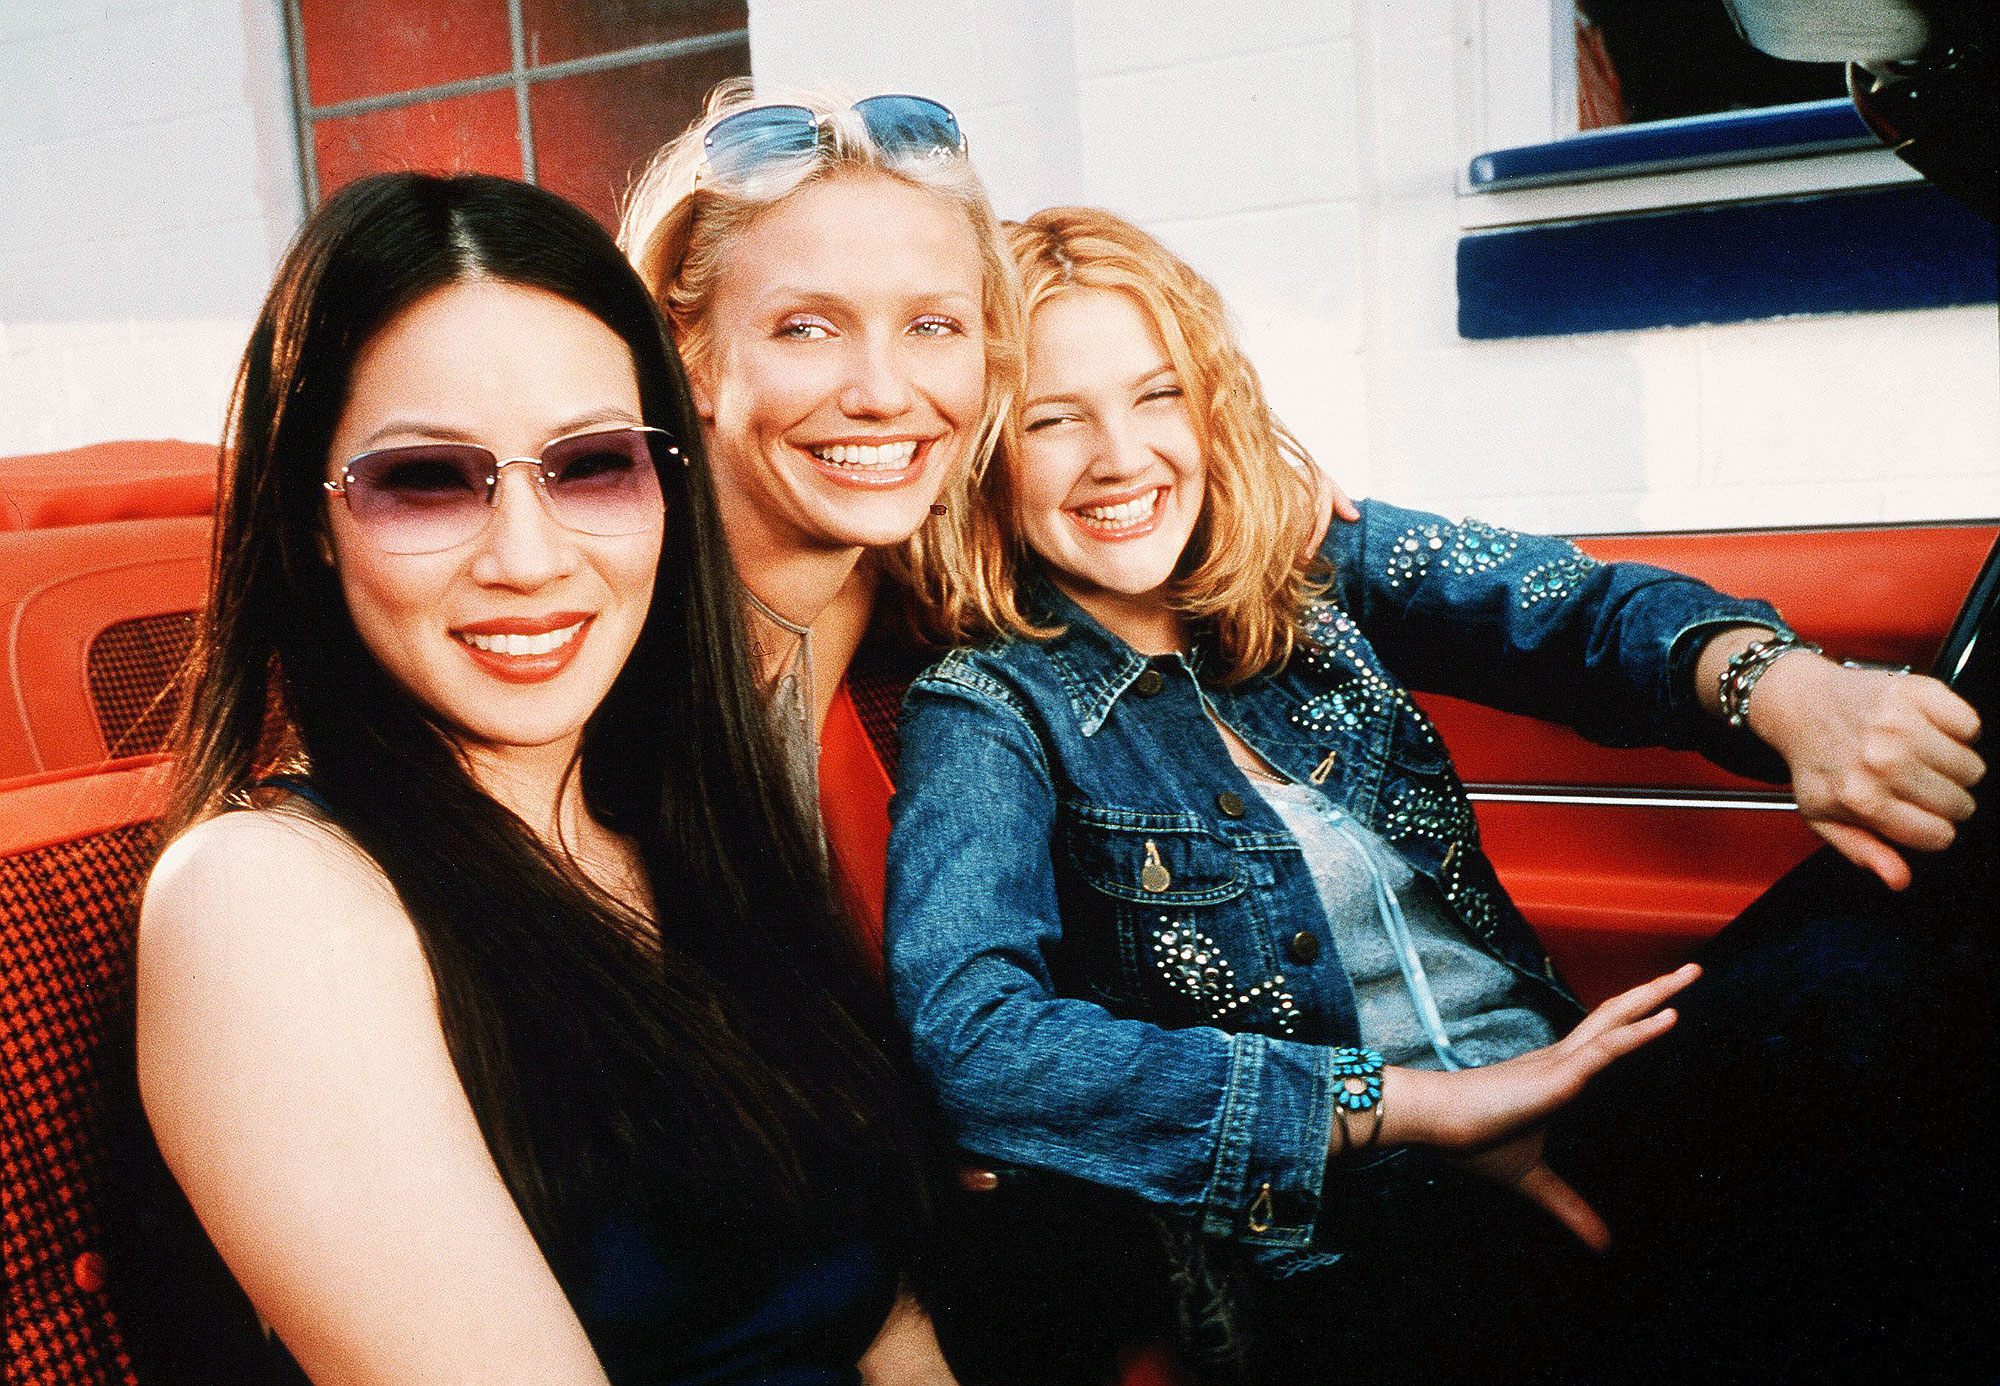 LUCY LIU ON CHARLIE'S ANGELS